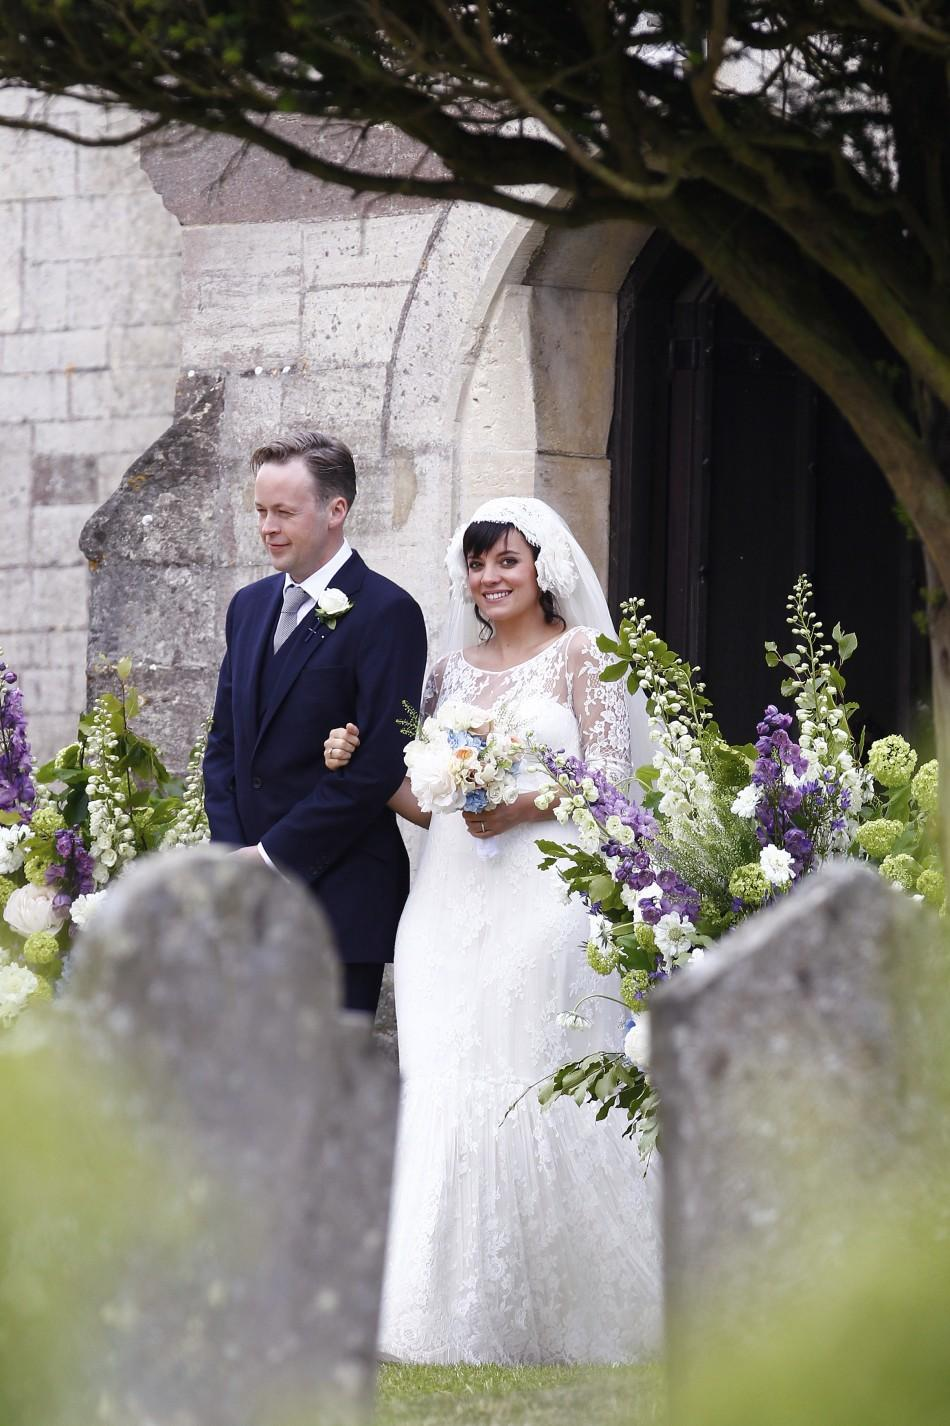 British Singer Lily Allen smiles after marrying Sam Cooper as the couple leaves St James the Great Church in Cranham, Goucestershire, western England, June 11, 2011.